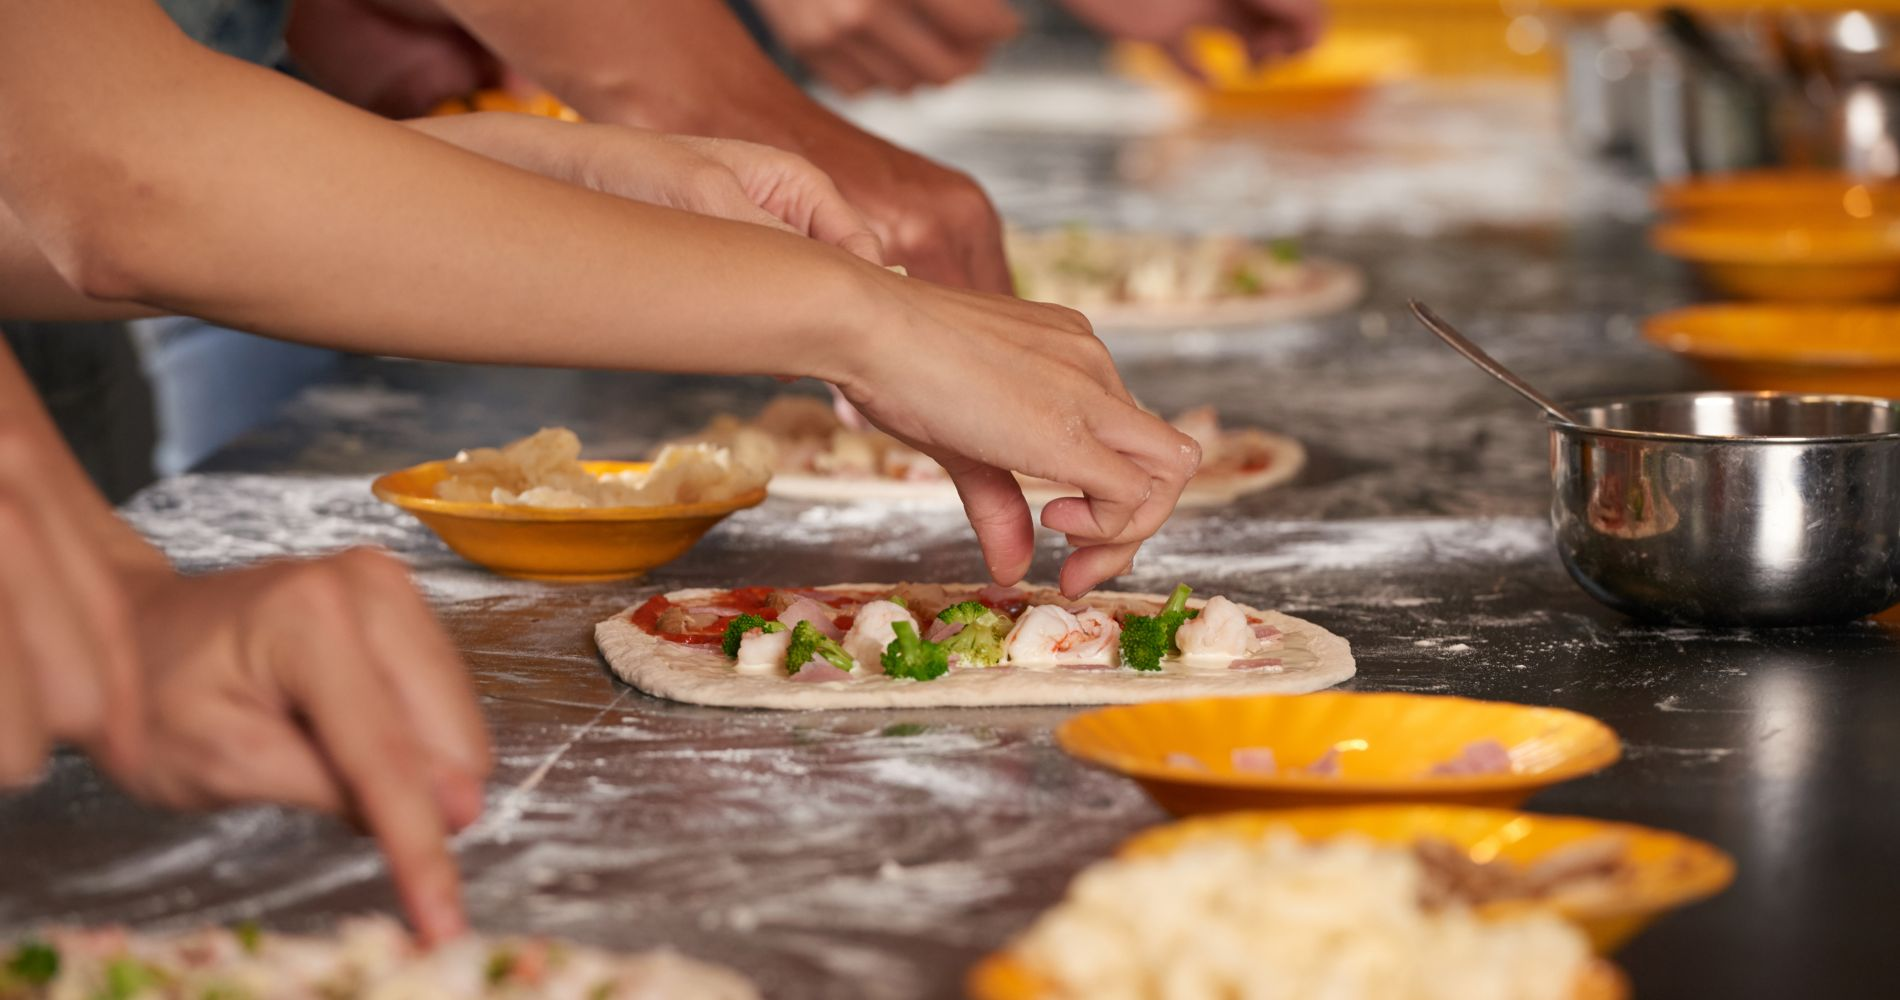 Pizza-Making Course with Dinner in Rome